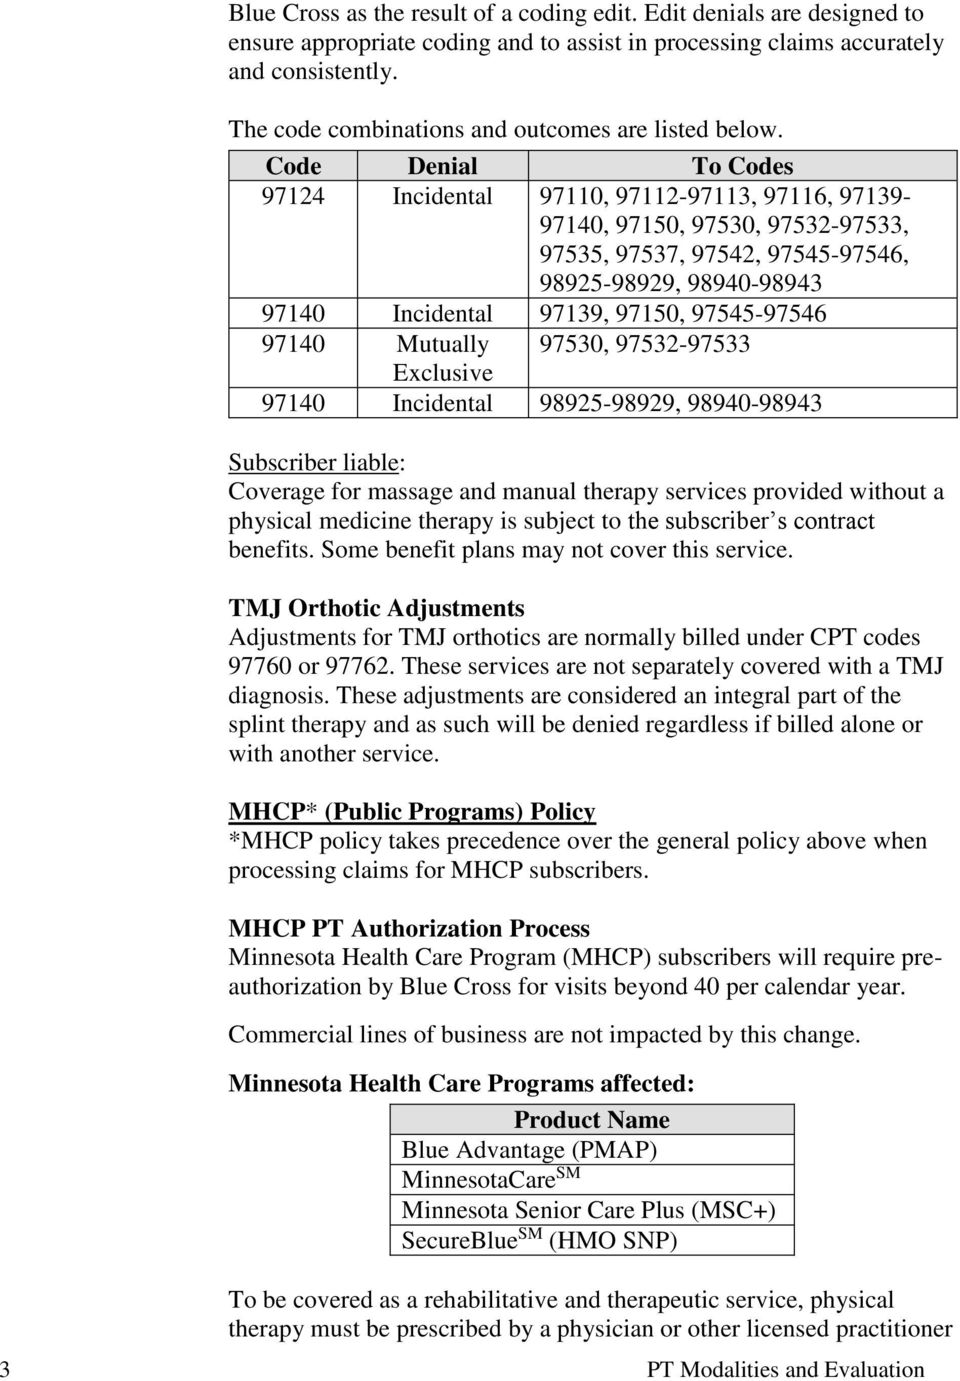 medicare g codes physical therapy cheat sheet